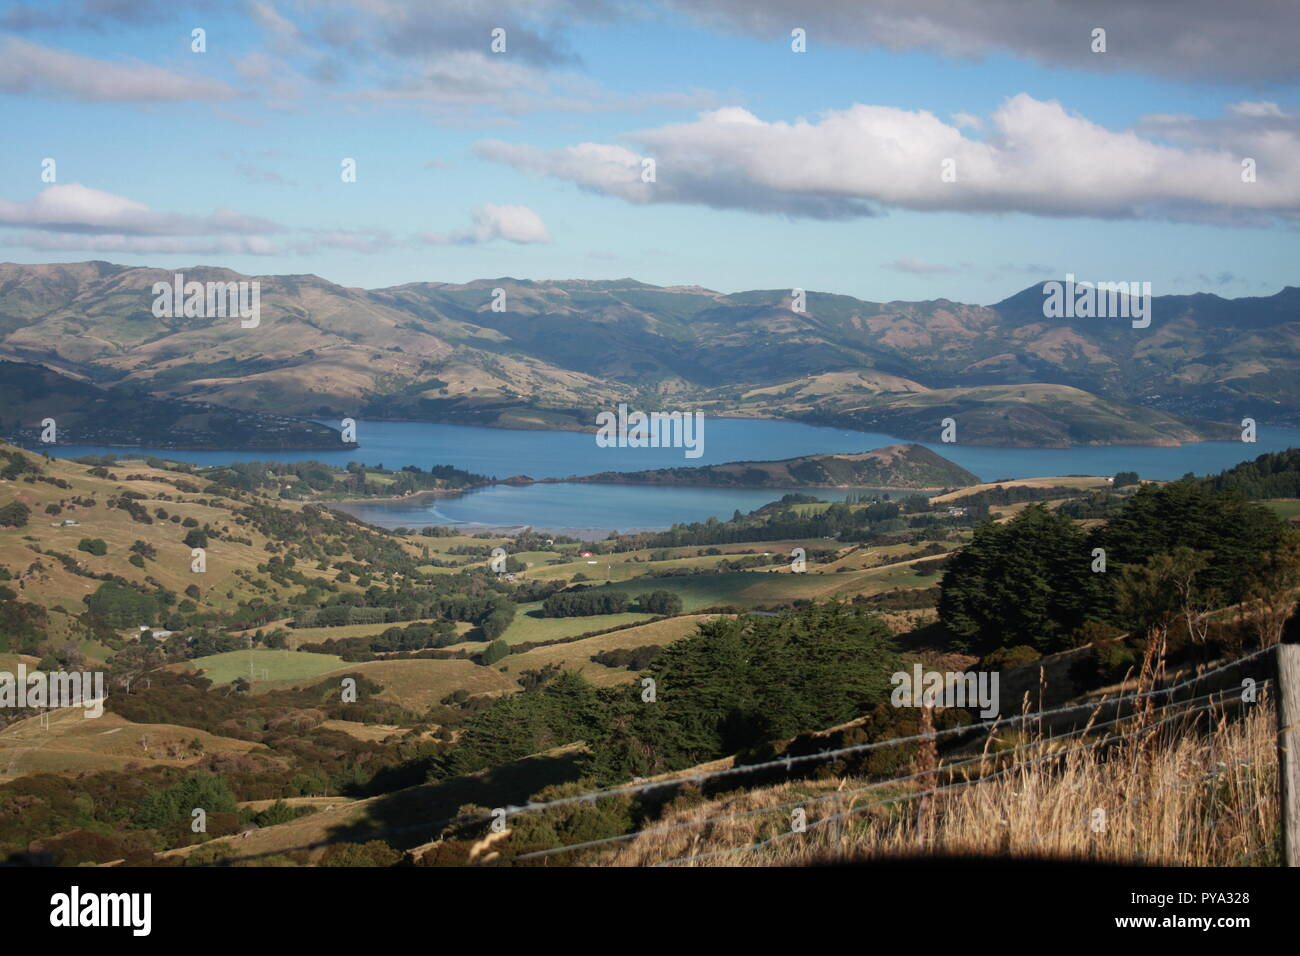 Looking over the Akaroa inlet towards Lushington Bay from the A75, with New Zealand hill farming land in the foreground. with a cloudy sky. - Stock Image